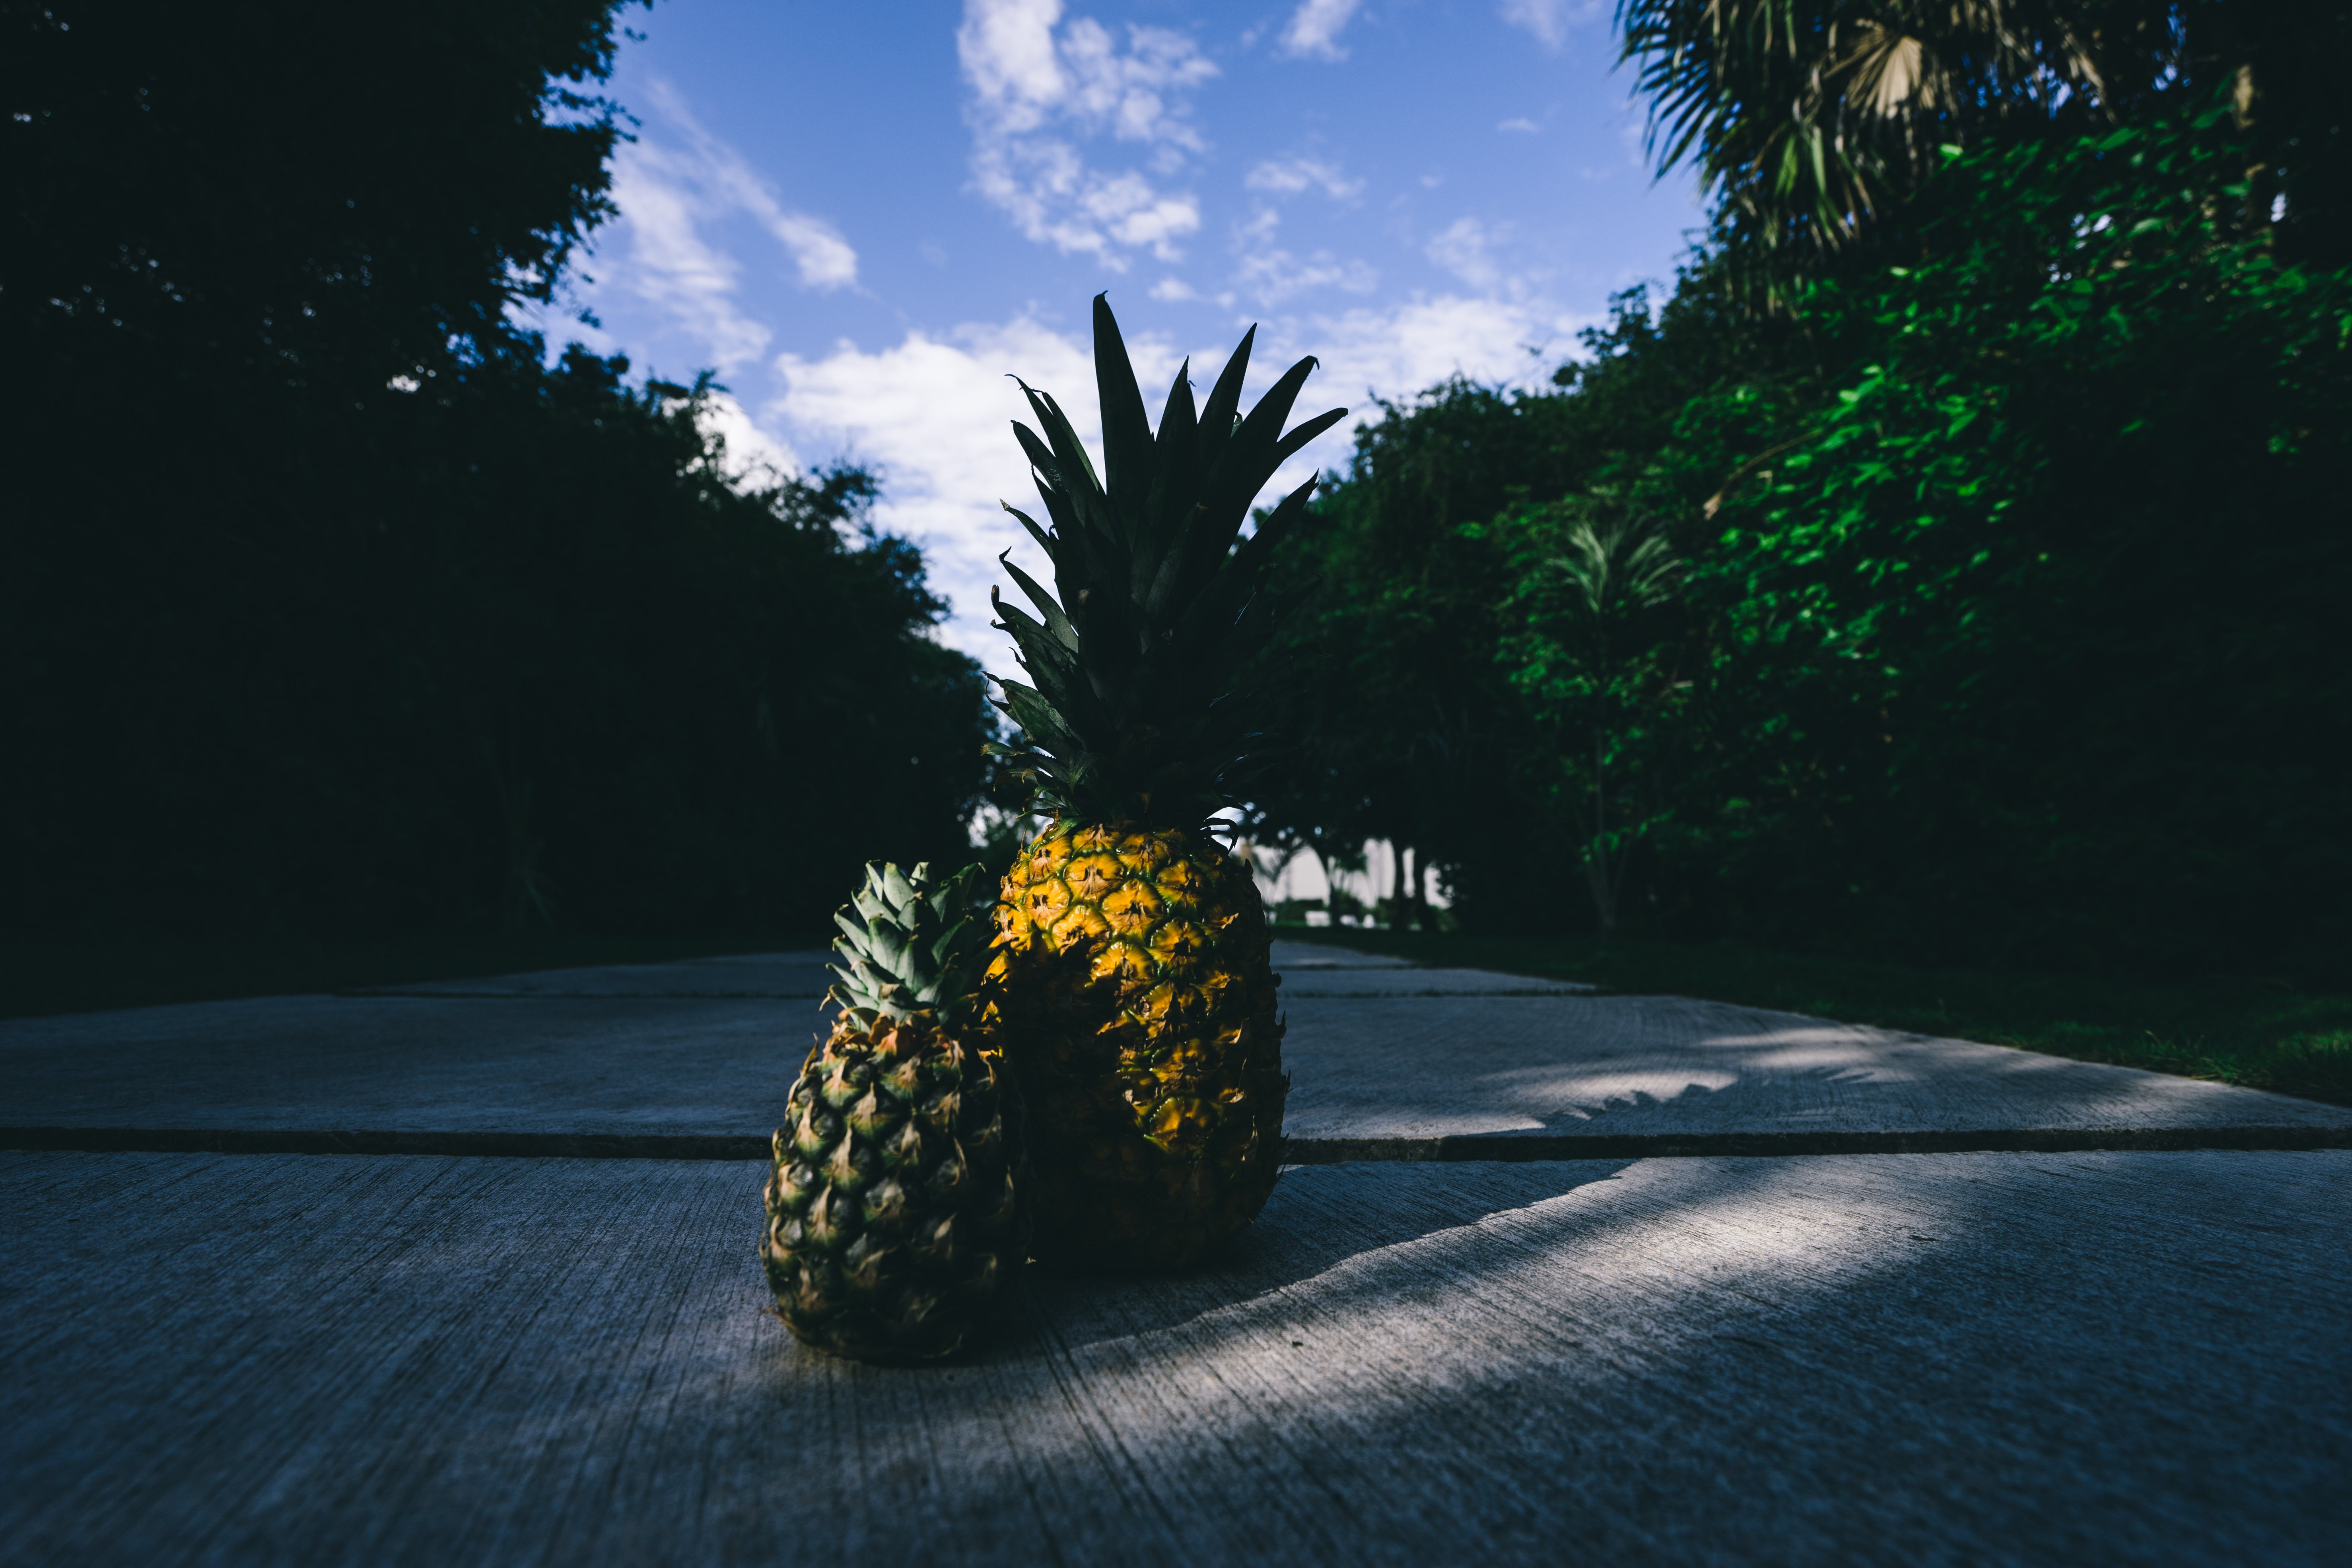 Two Pineapples on Gray Surface Outdoors